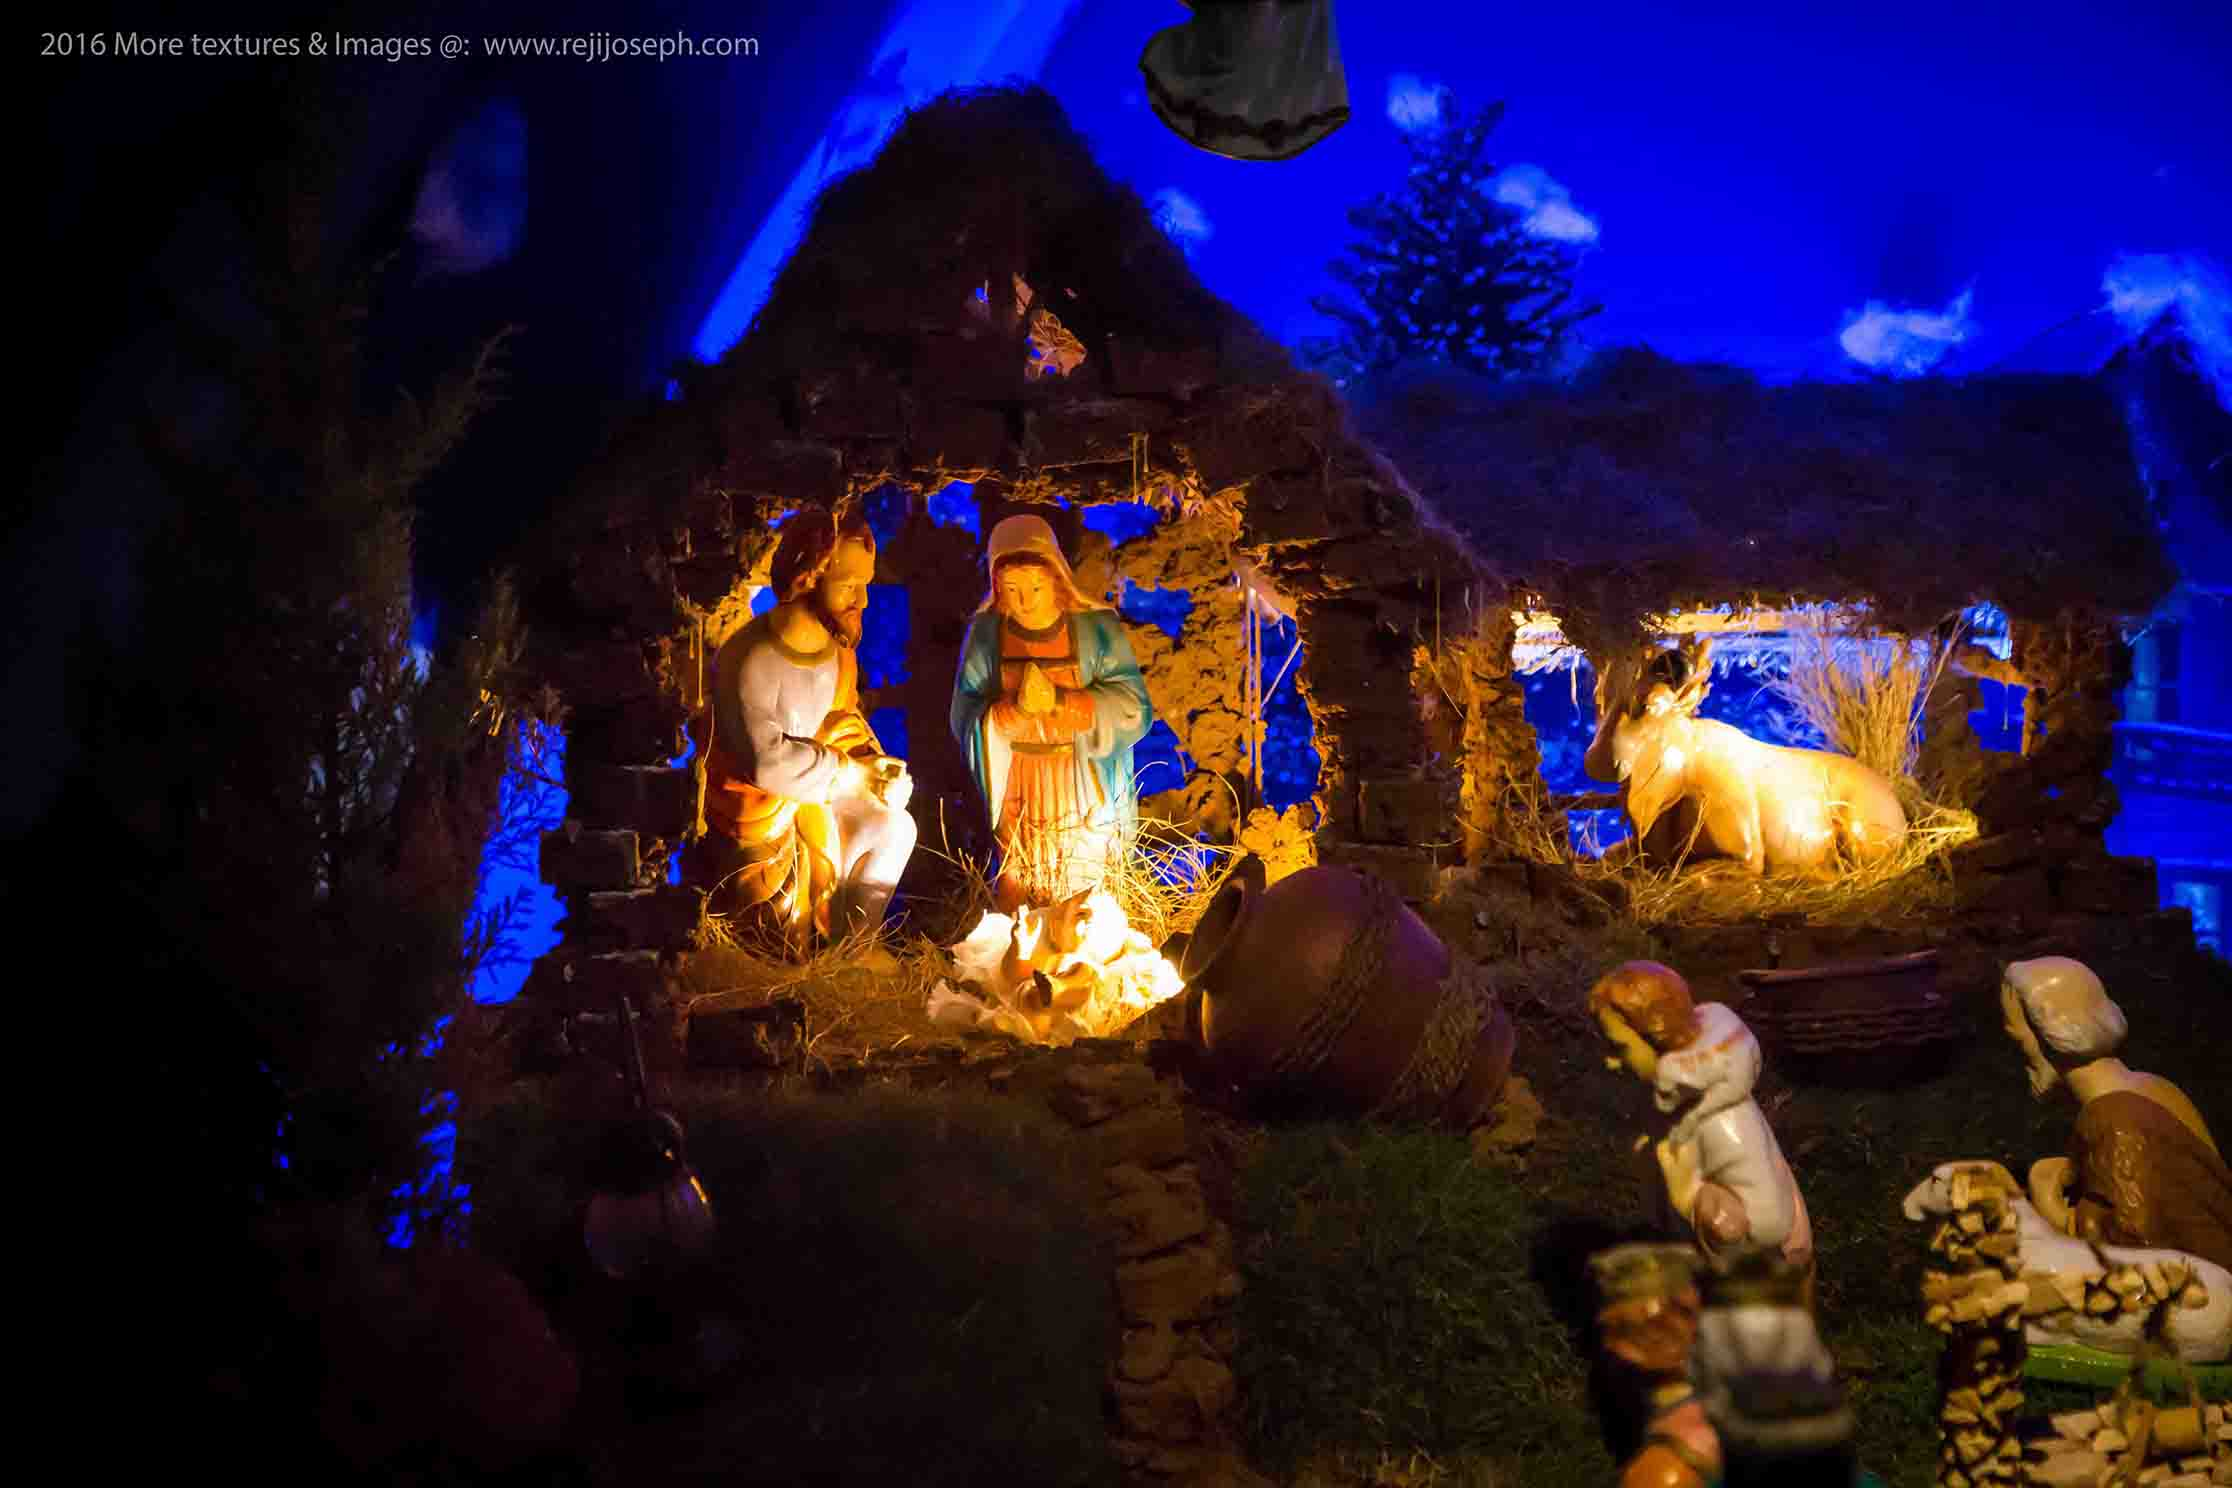 Christmas crib Pulkoodu St. George Forane Church Edappally 00015